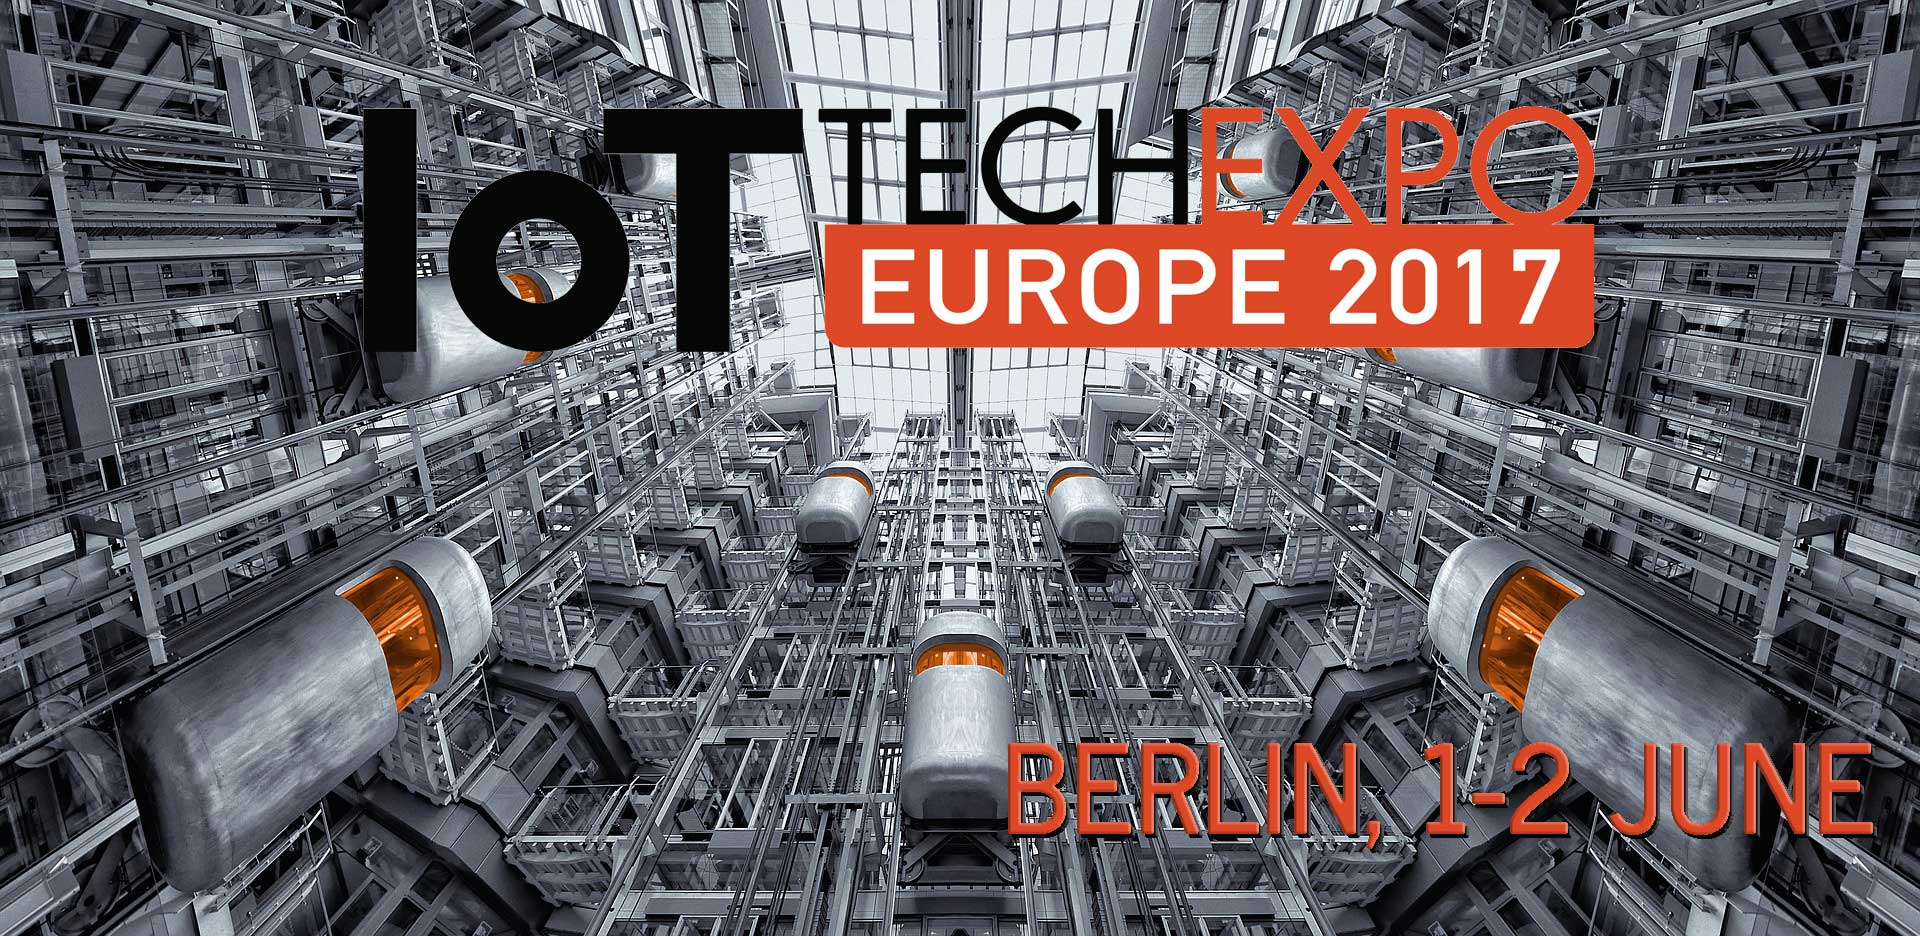 IoT Tech Expo Europe 2017 Berlin 1-2 June